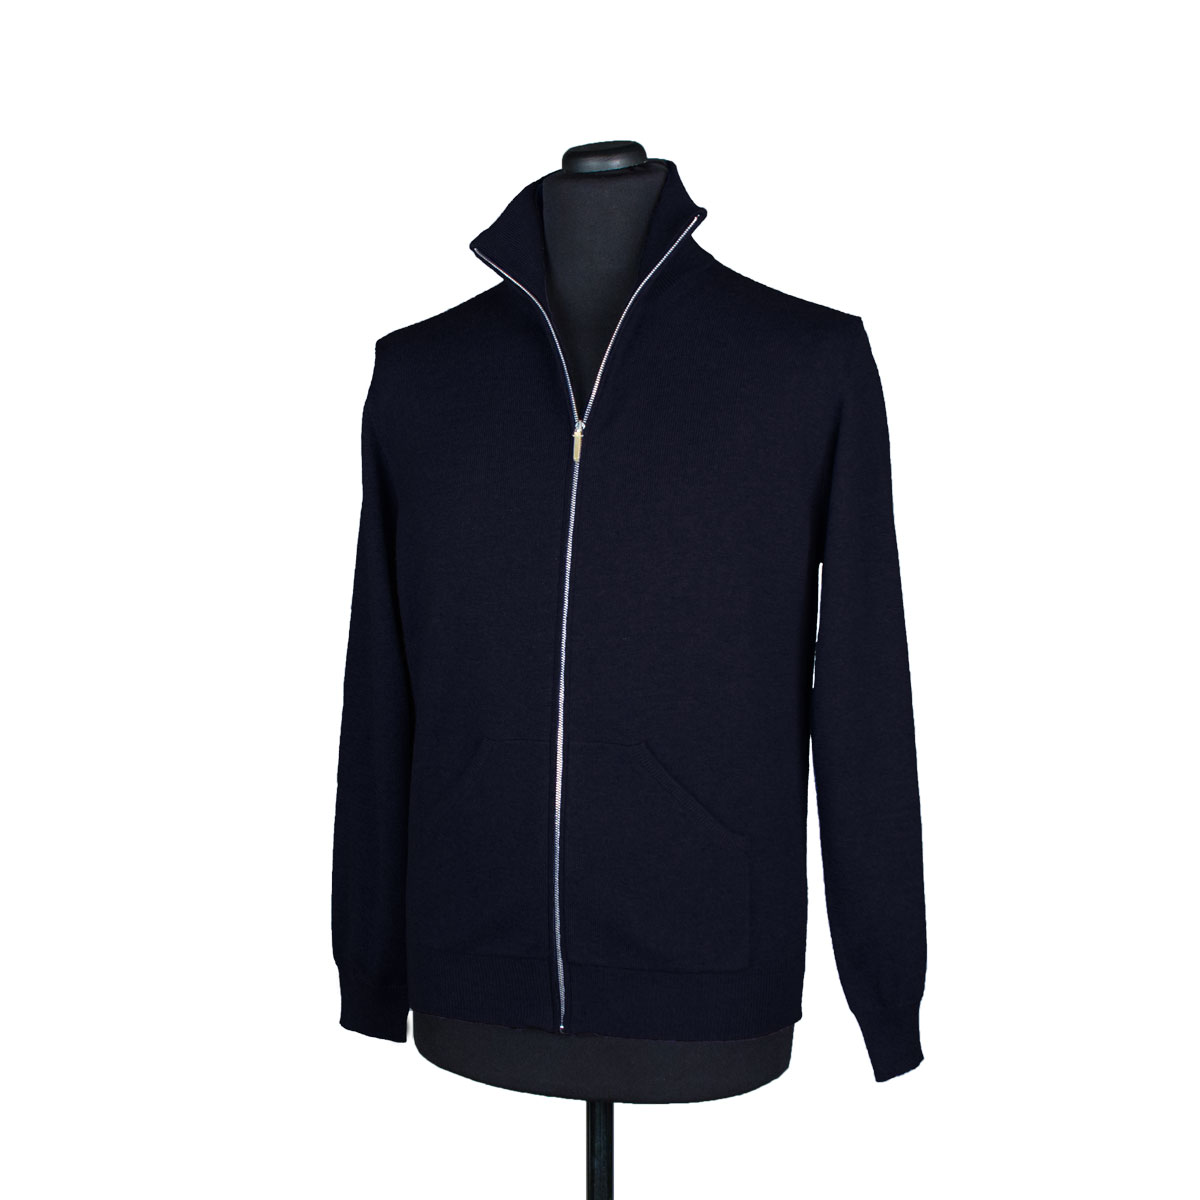 Mens zip up cashmere cardigan with pockets, midnight blue ...